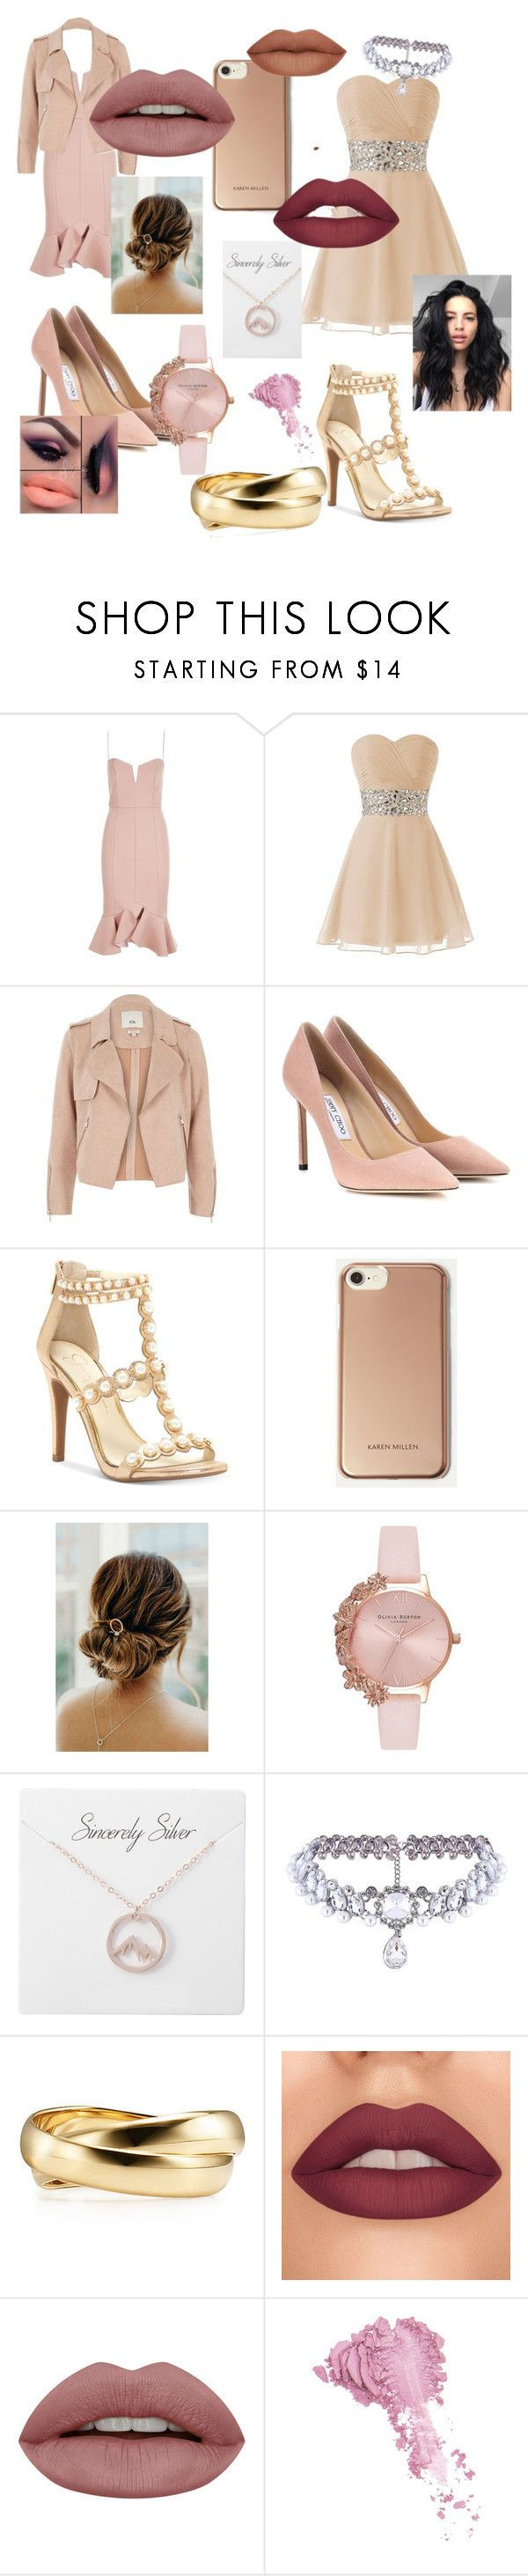 """""""Cocktail party for two besties"""" by hzmwilcox ❤ liked on Polyvore featuring Nicholas, River Island, Jimmy Choo, Jessica Simpson, Karen Millen, Olivia Burton, WithChic and Bésame"""